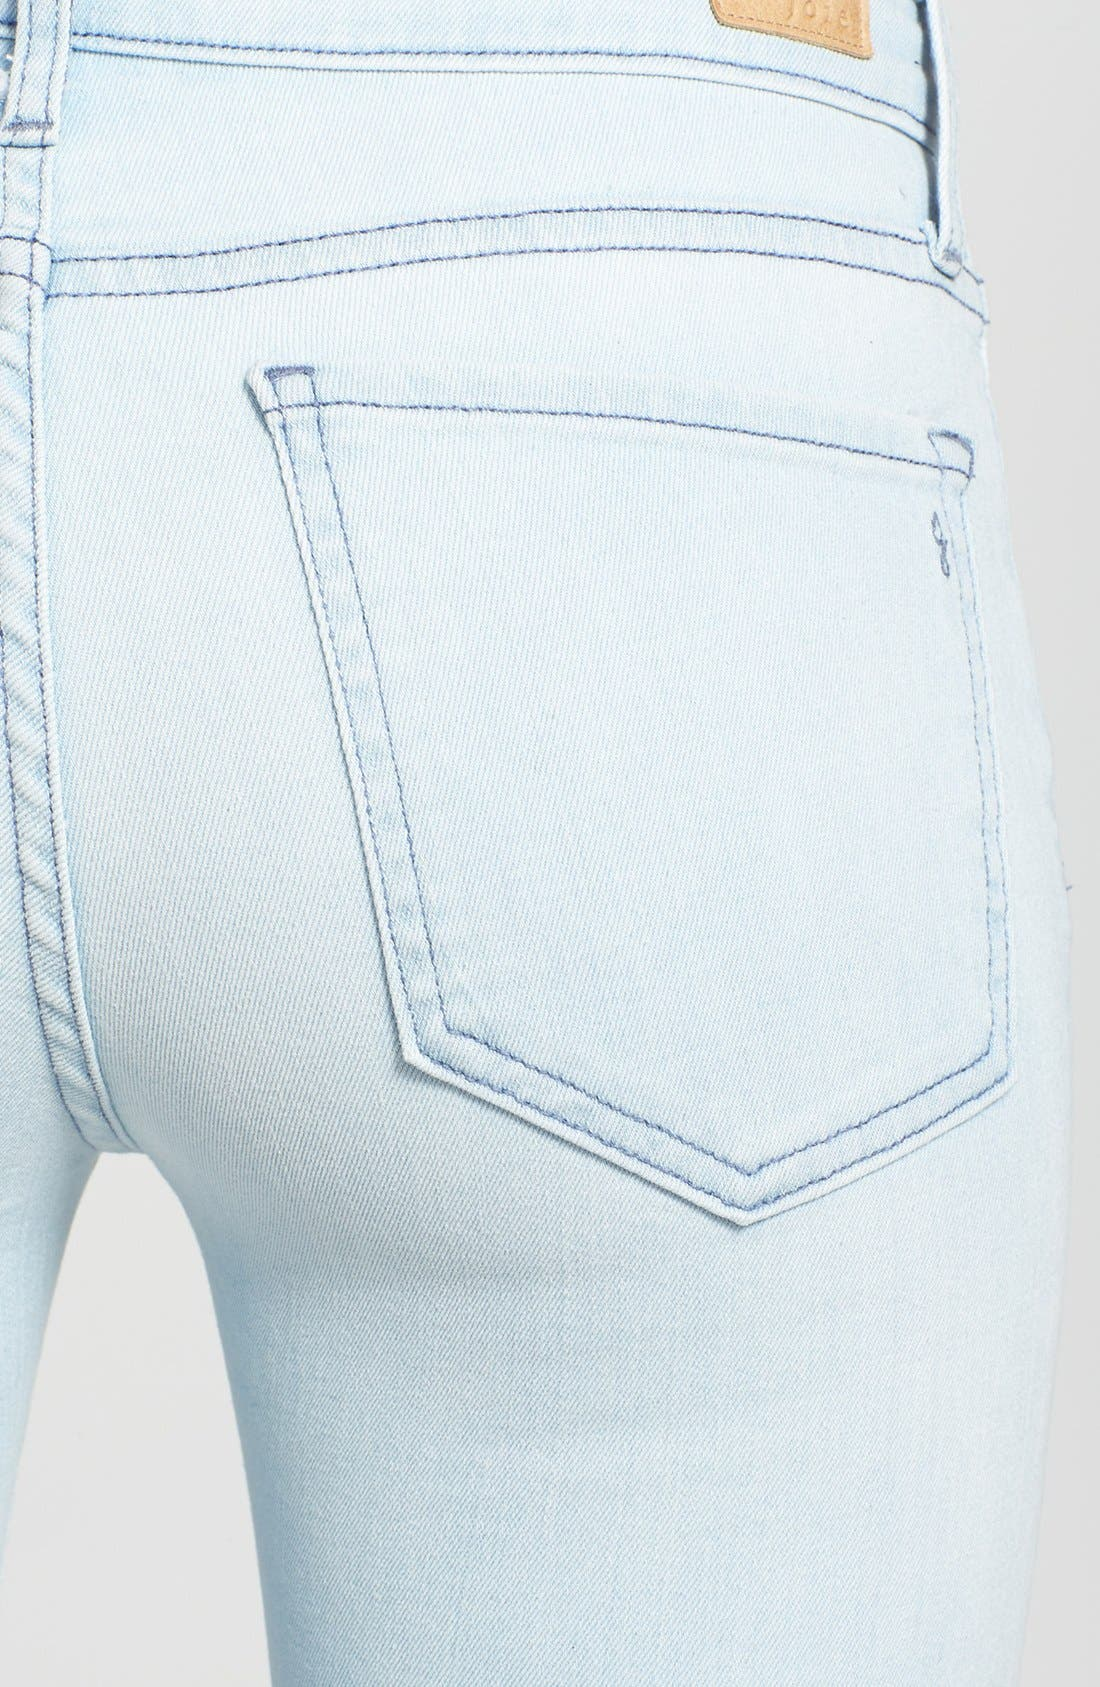 Alternate Image 3  - Joie Colored Crop Stretch Skinny Jeans (Starlight)